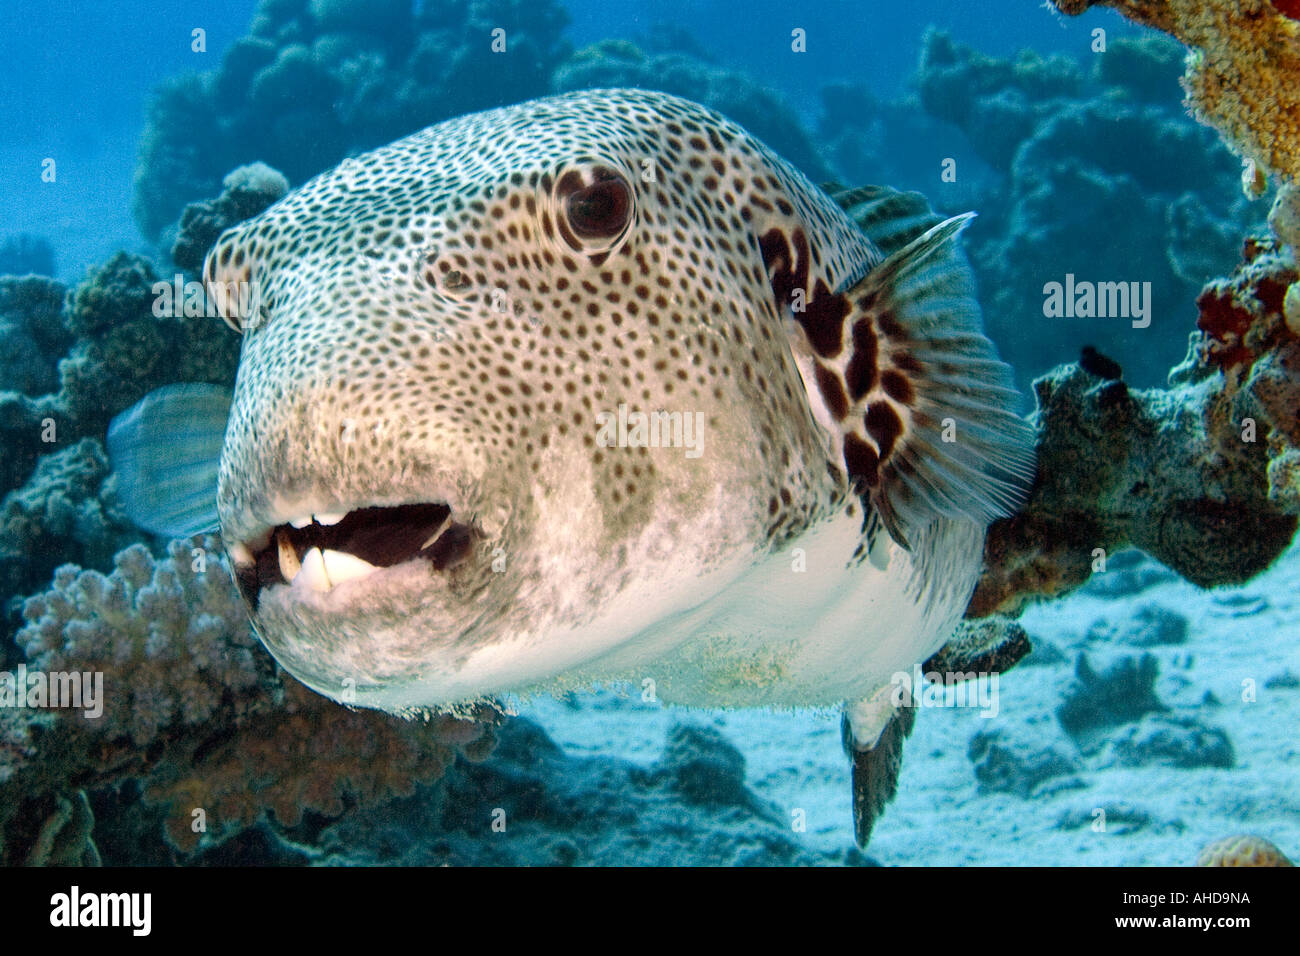 Large puffer fish in the red sea stock photo royalty free for Large ocean fish